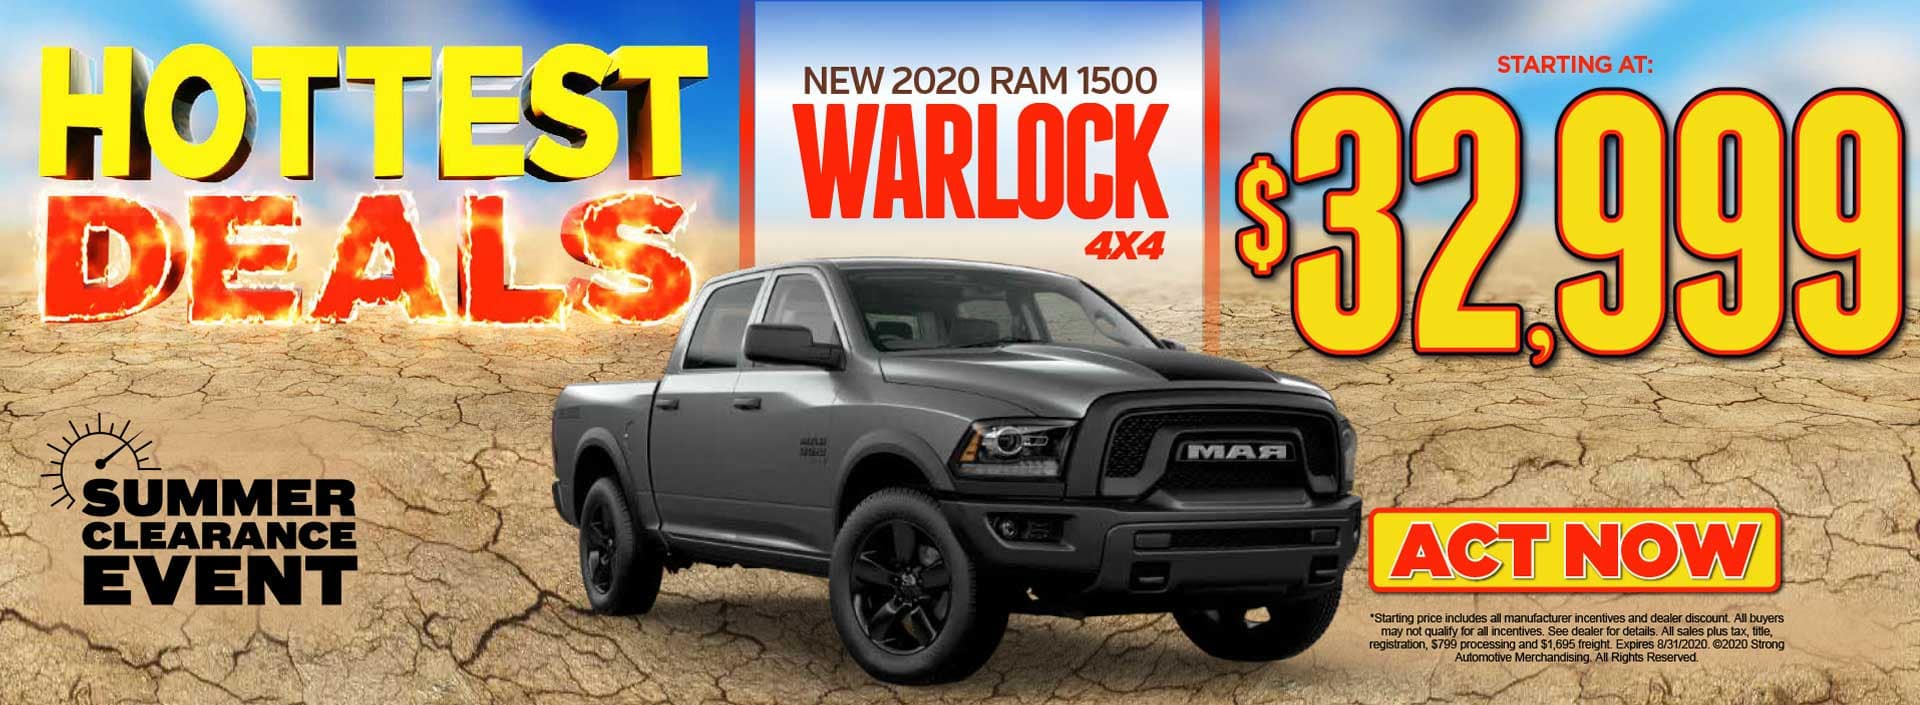 New 2020 Ram 1500 Warlock Starting at $32,999* Act Now